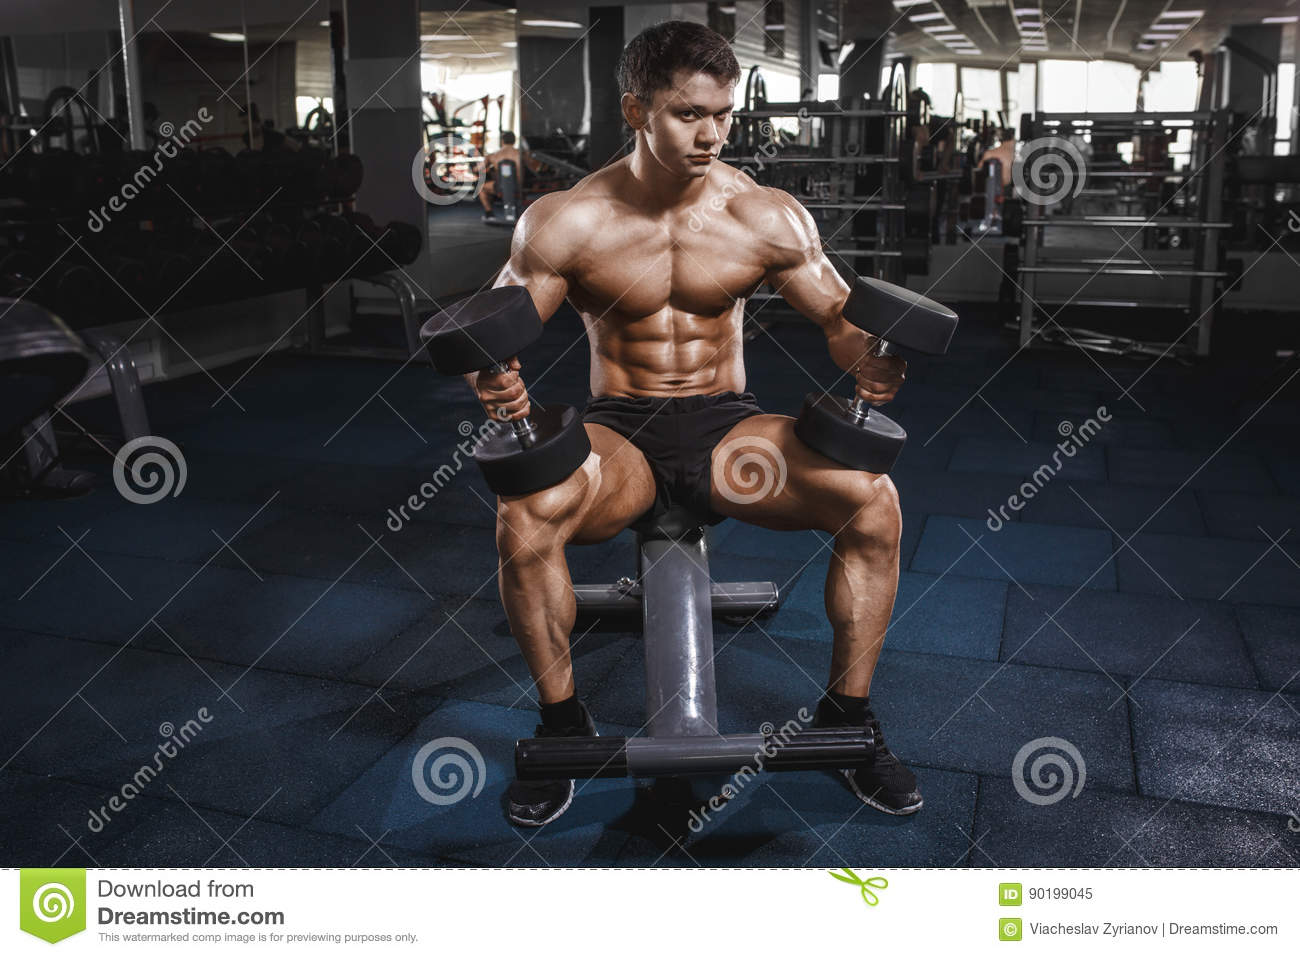 Athlete In The Gym Training With Dumbbells Stock Image